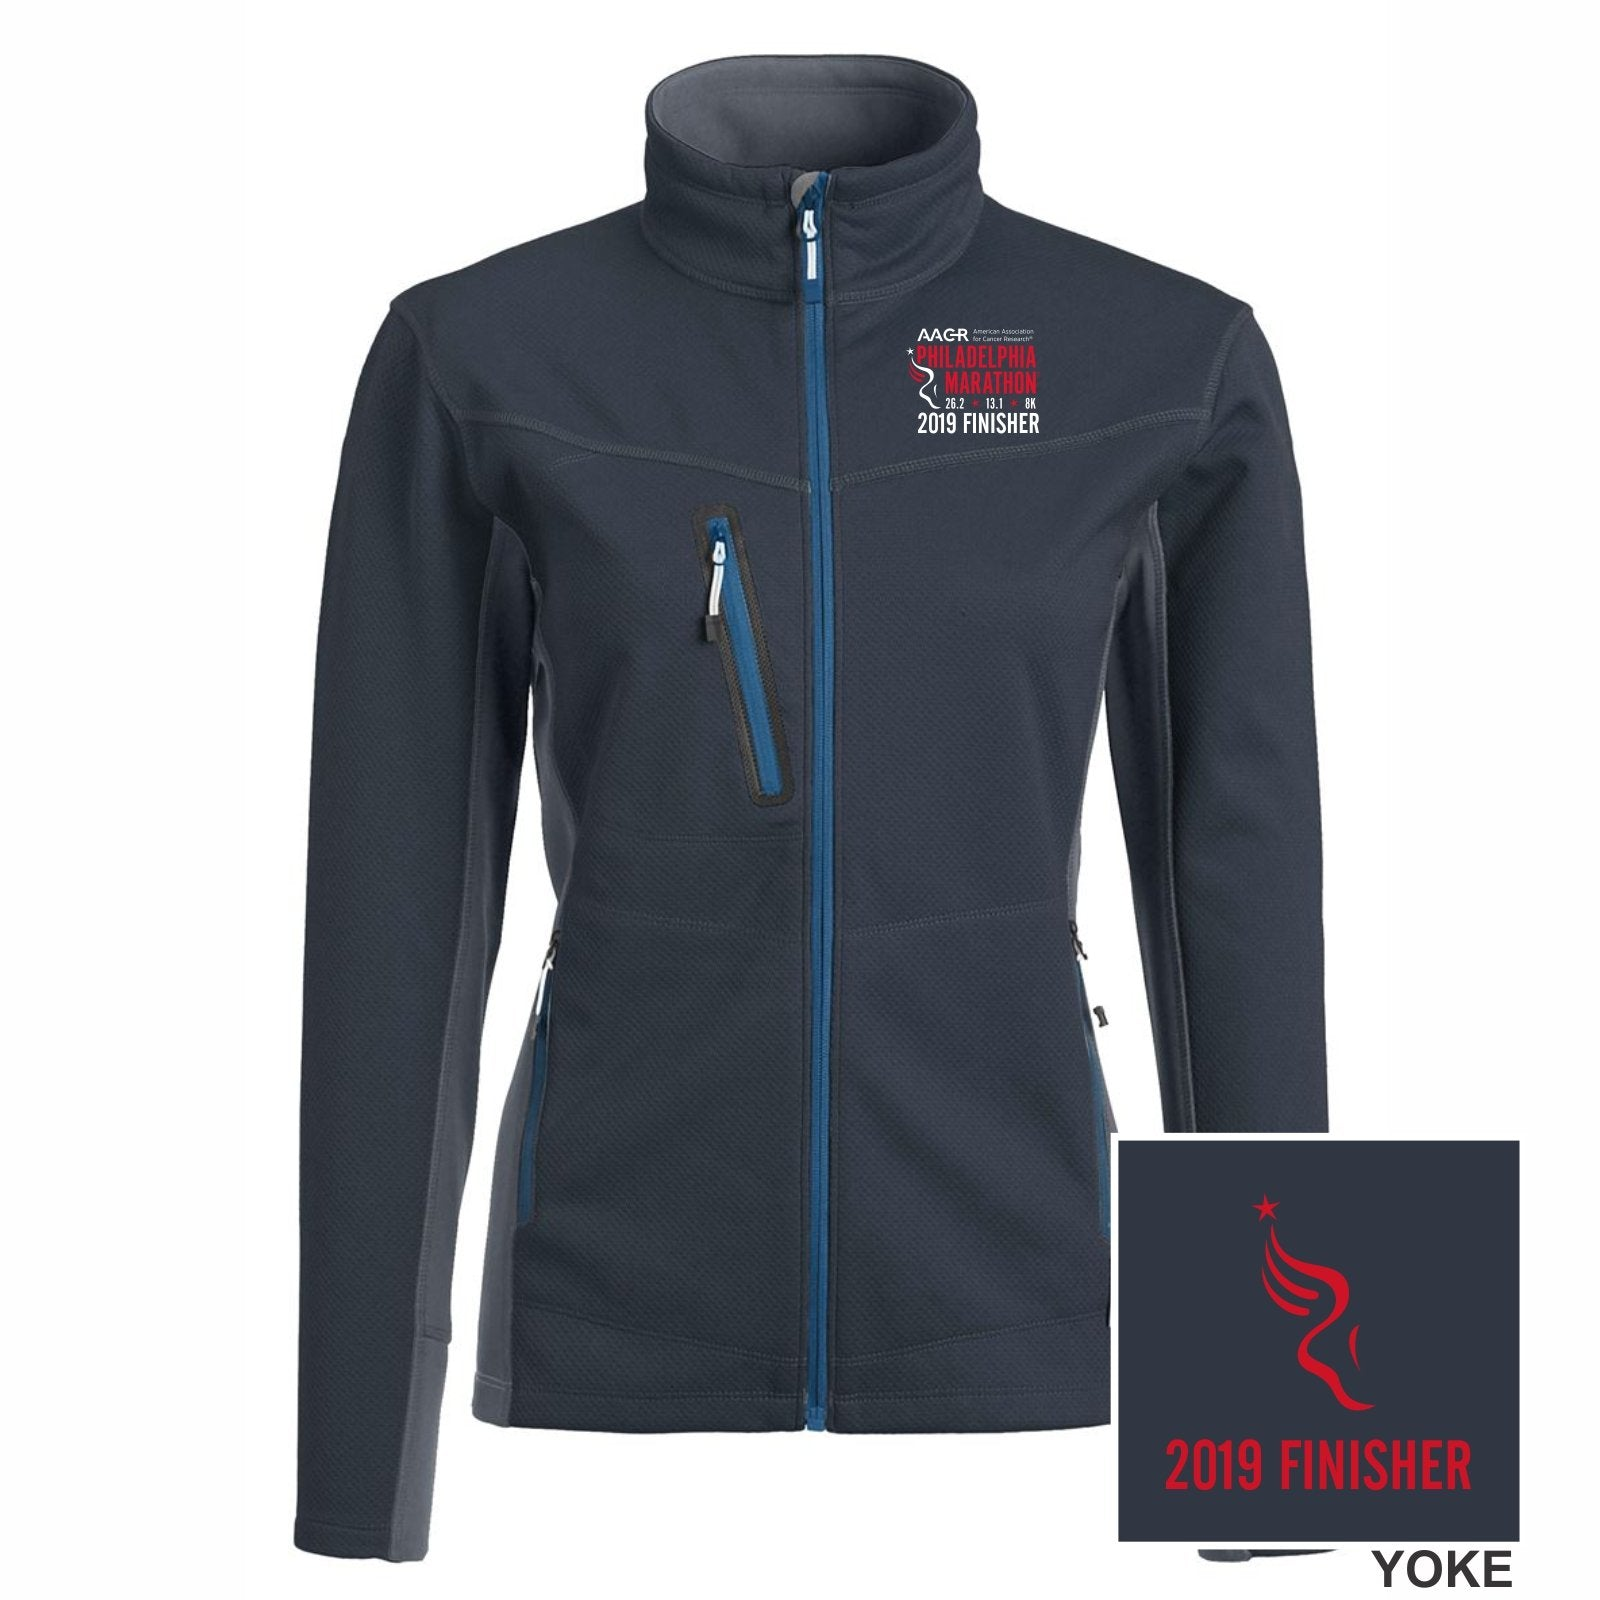 Women's 'Phantom' Tech Zip Jacket -Midnight Navy 'Finisher 2019 Embr. Design' - AACR Philadelphia Marathon